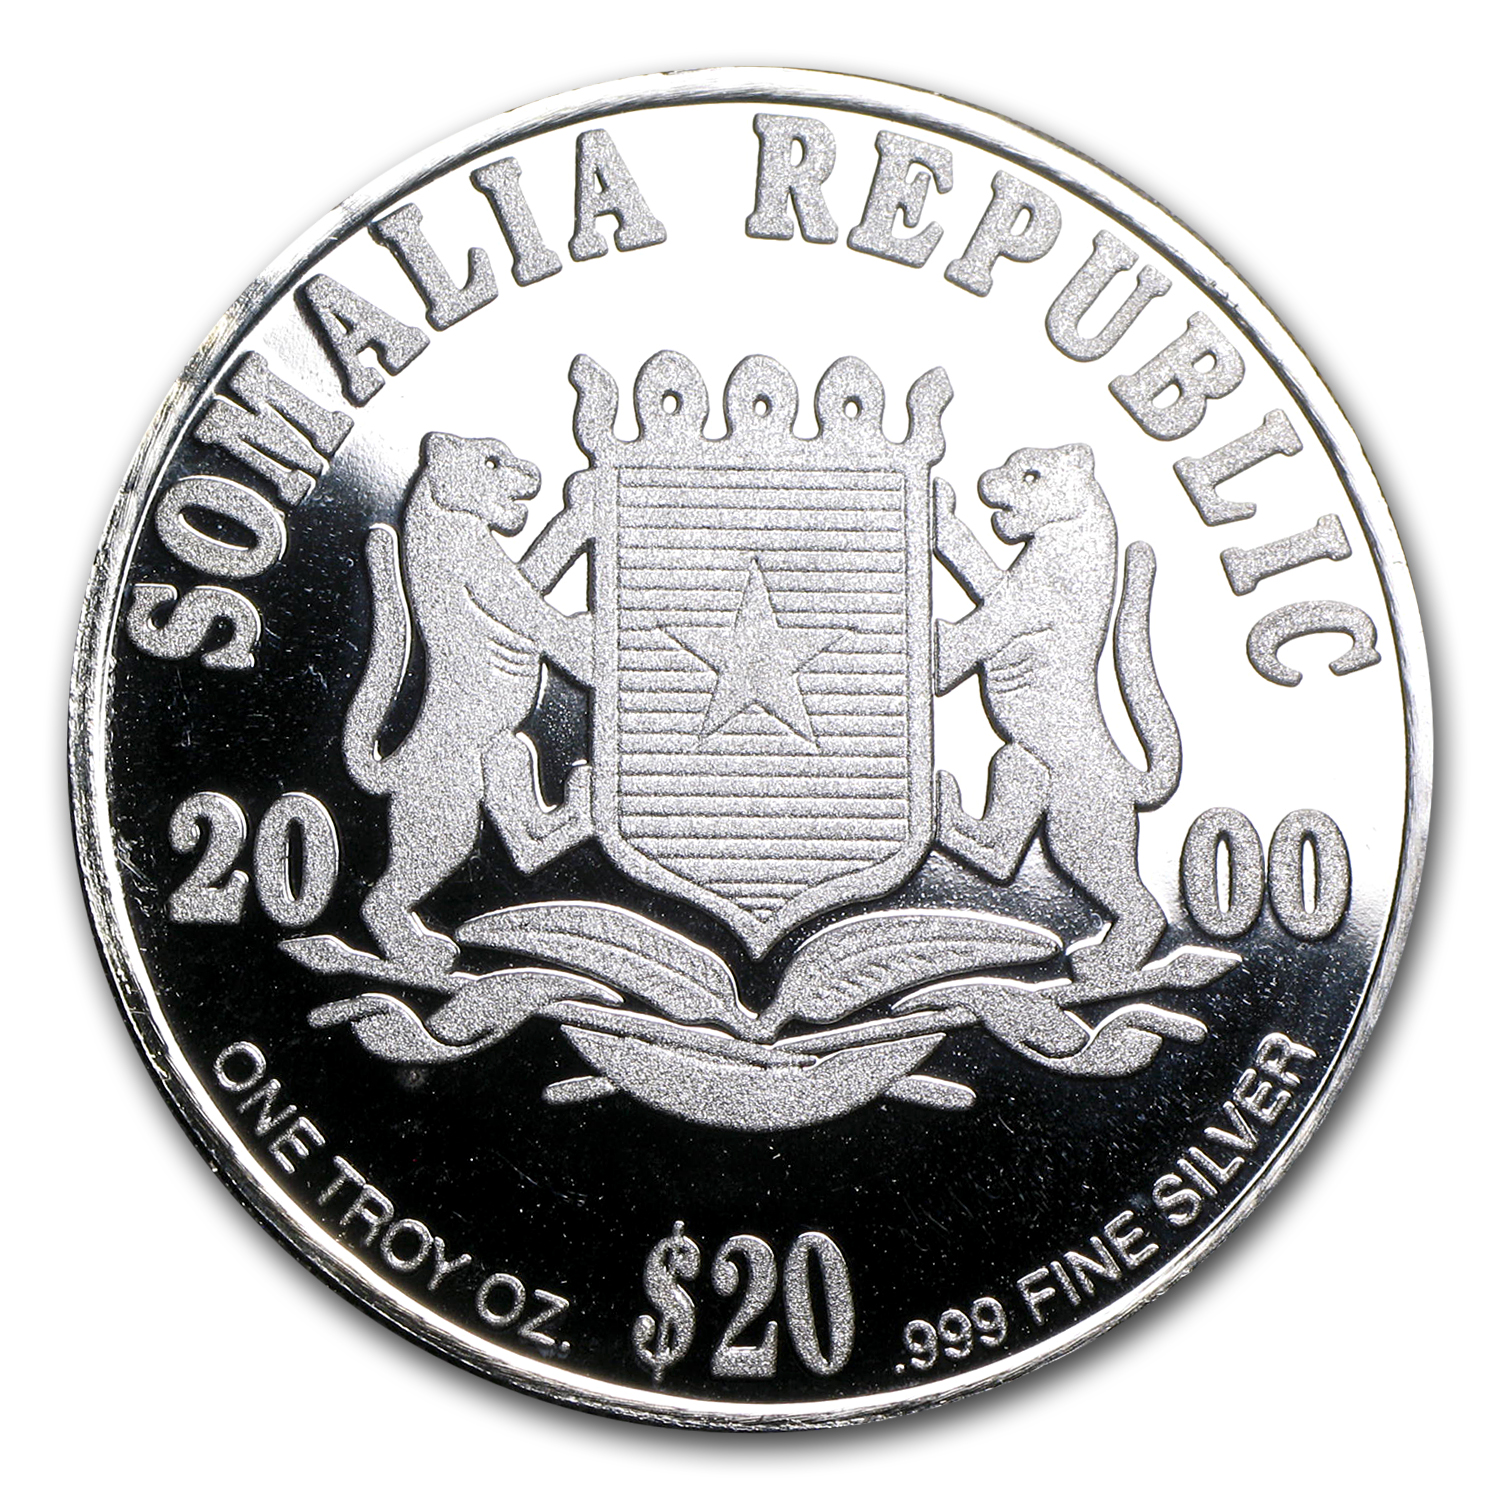 Somali Republic 2000 $20 Silver World Peace ASW 1.0